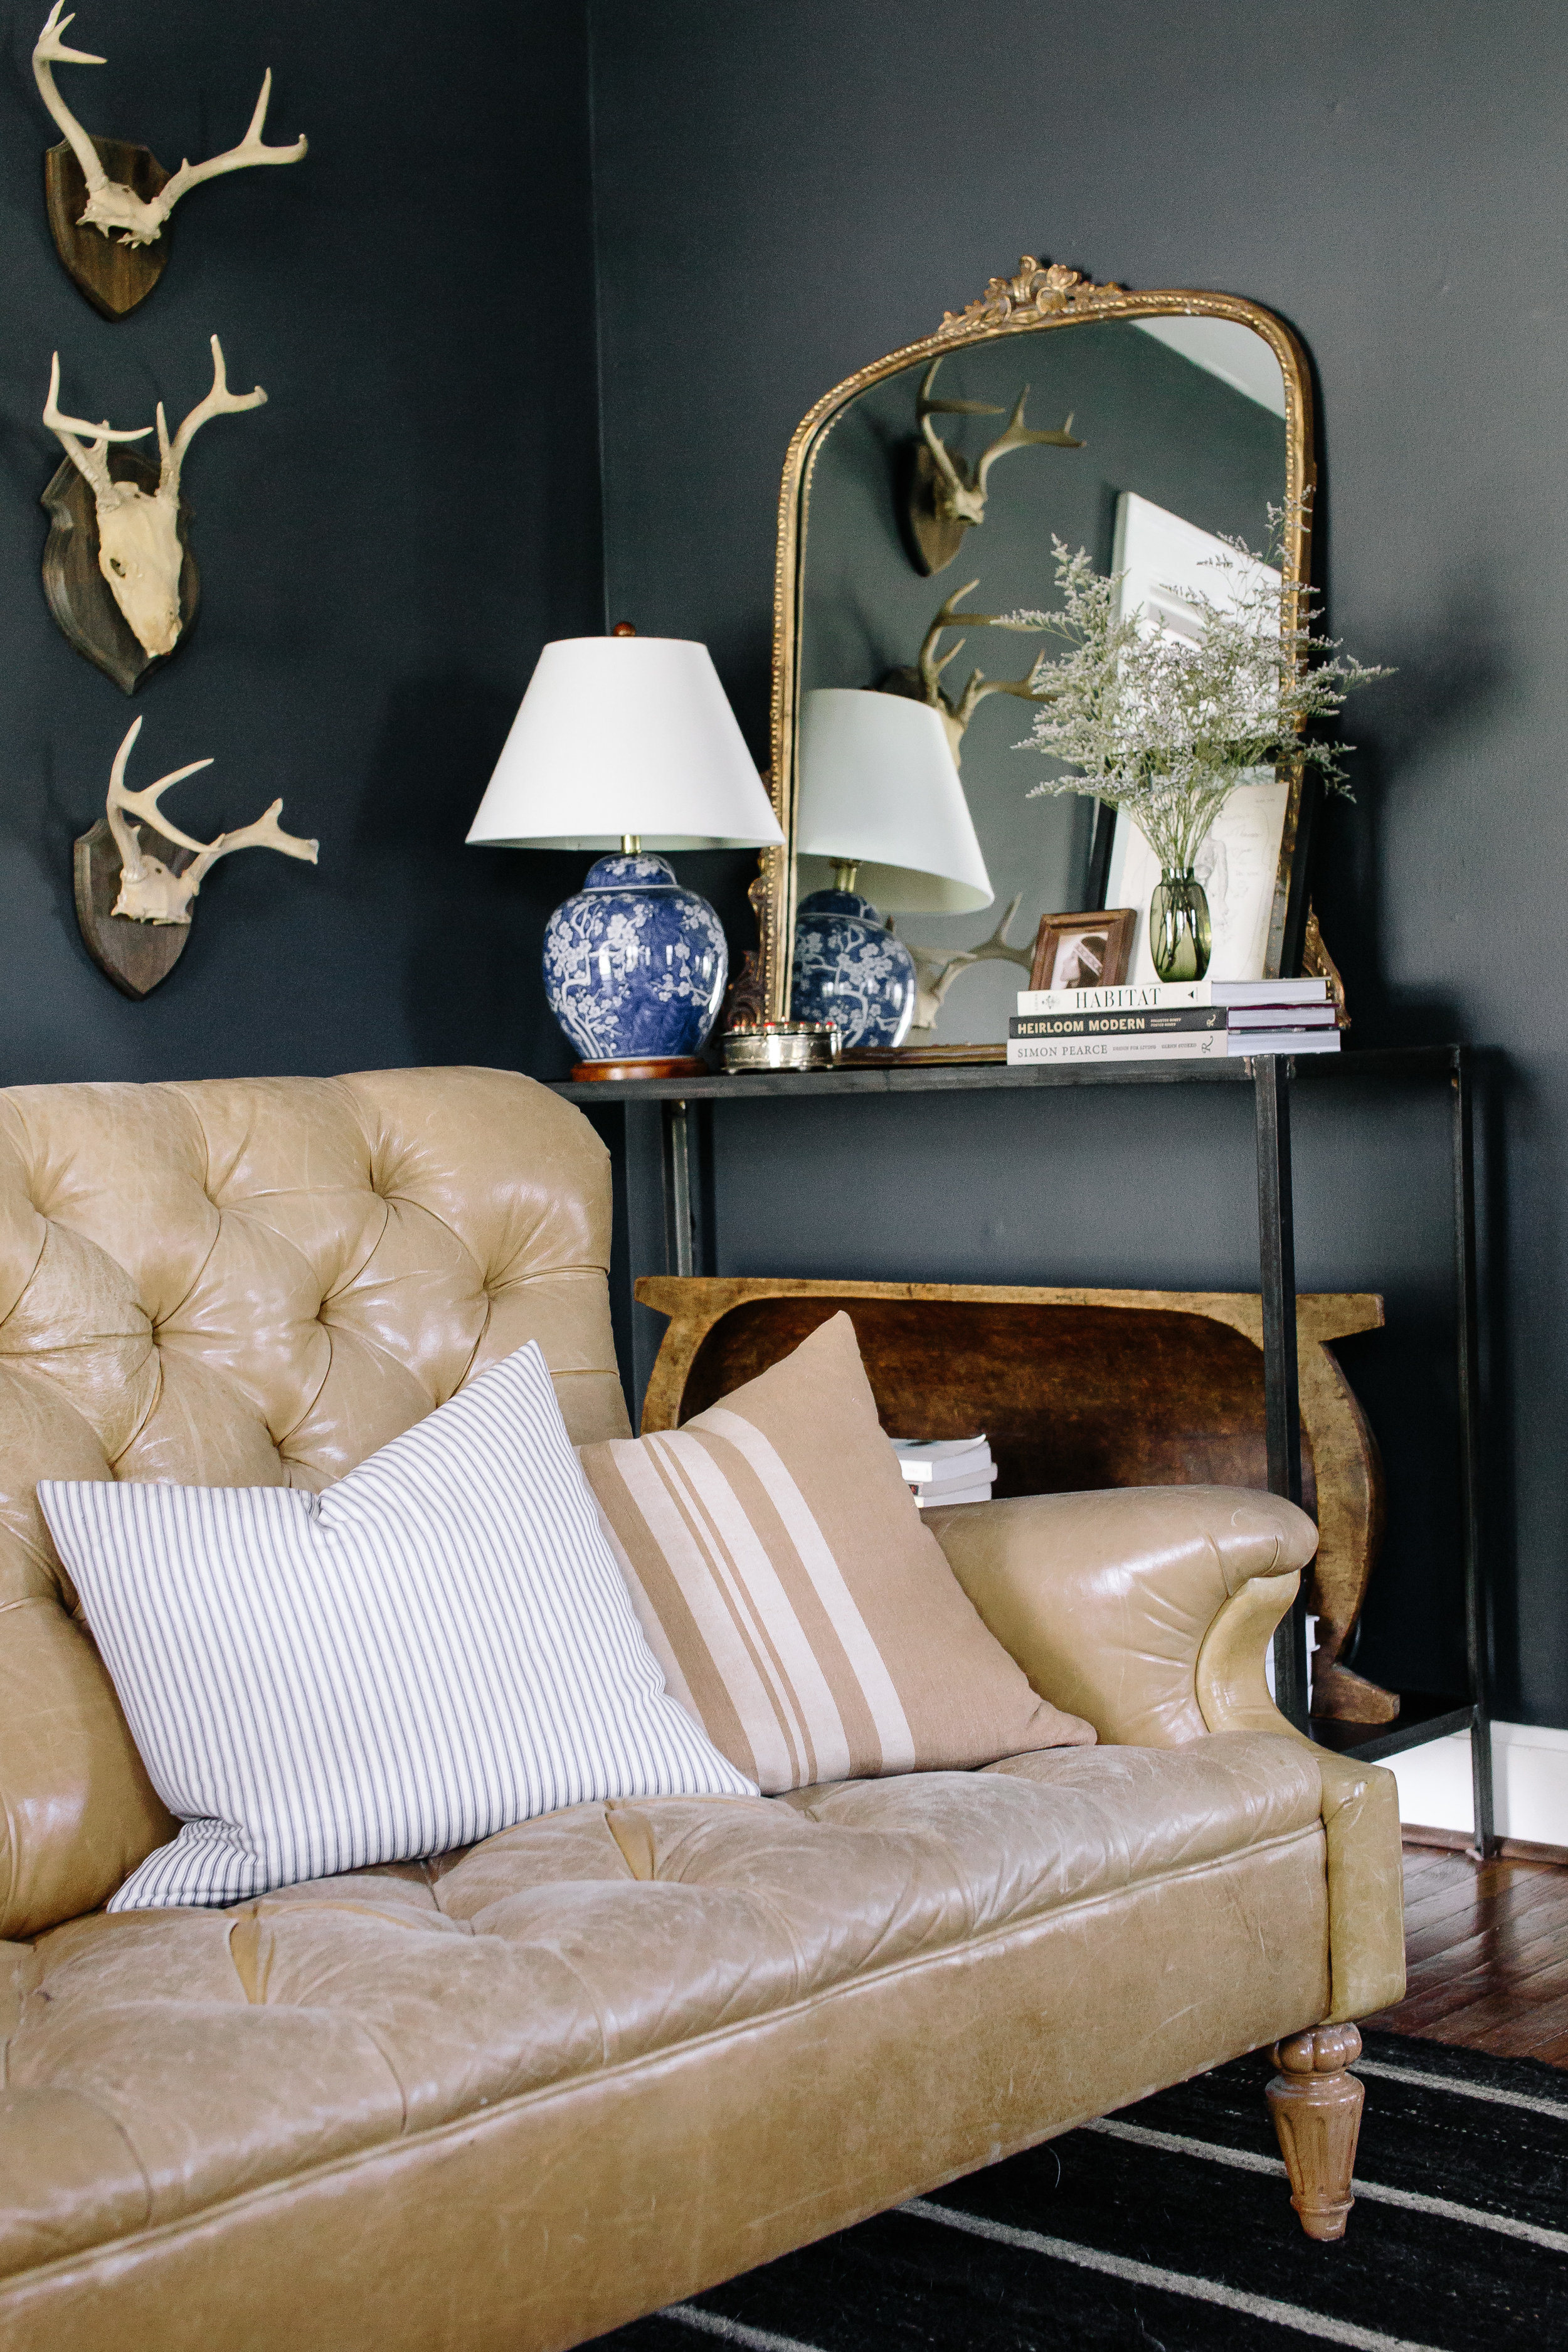 Jennie_Interiors-8.jpg